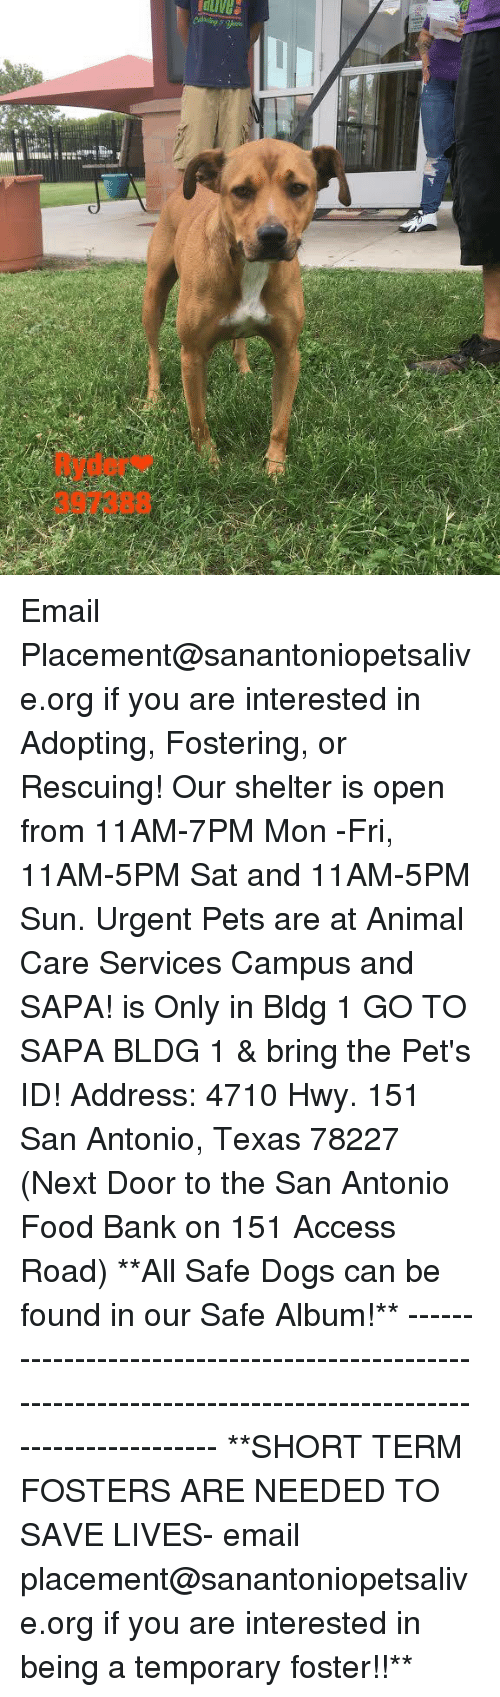 Dogs, Food, and Memes: Ryder  397388 Email Placement@sanantoniopetsalive.org if you are interested in Adopting, Fostering, or Rescuing!  Our shelter is open from 11AM-7PM Mon -Fri, 11AM-5PM Sat and 11AM-5PM Sun.  Urgent Pets are at Animal Care Services Campus and SAPA! is Only in Bldg 1 GO TO SAPA BLDG 1 & bring the Pet's ID! Address: 4710 Hwy. 151 San Antonio, Texas 78227 (Next Door to the San Antonio Food Bank on 151 Access Road)  **All Safe Dogs can be found in our Safe Album!** ---------------------------------------------------------------------------------------------------------- **SHORT TERM FOSTERS ARE NEEDED TO SAVE LIVES- email placement@sanantoniopetsalive.org if you are interested in being a temporary foster!!**